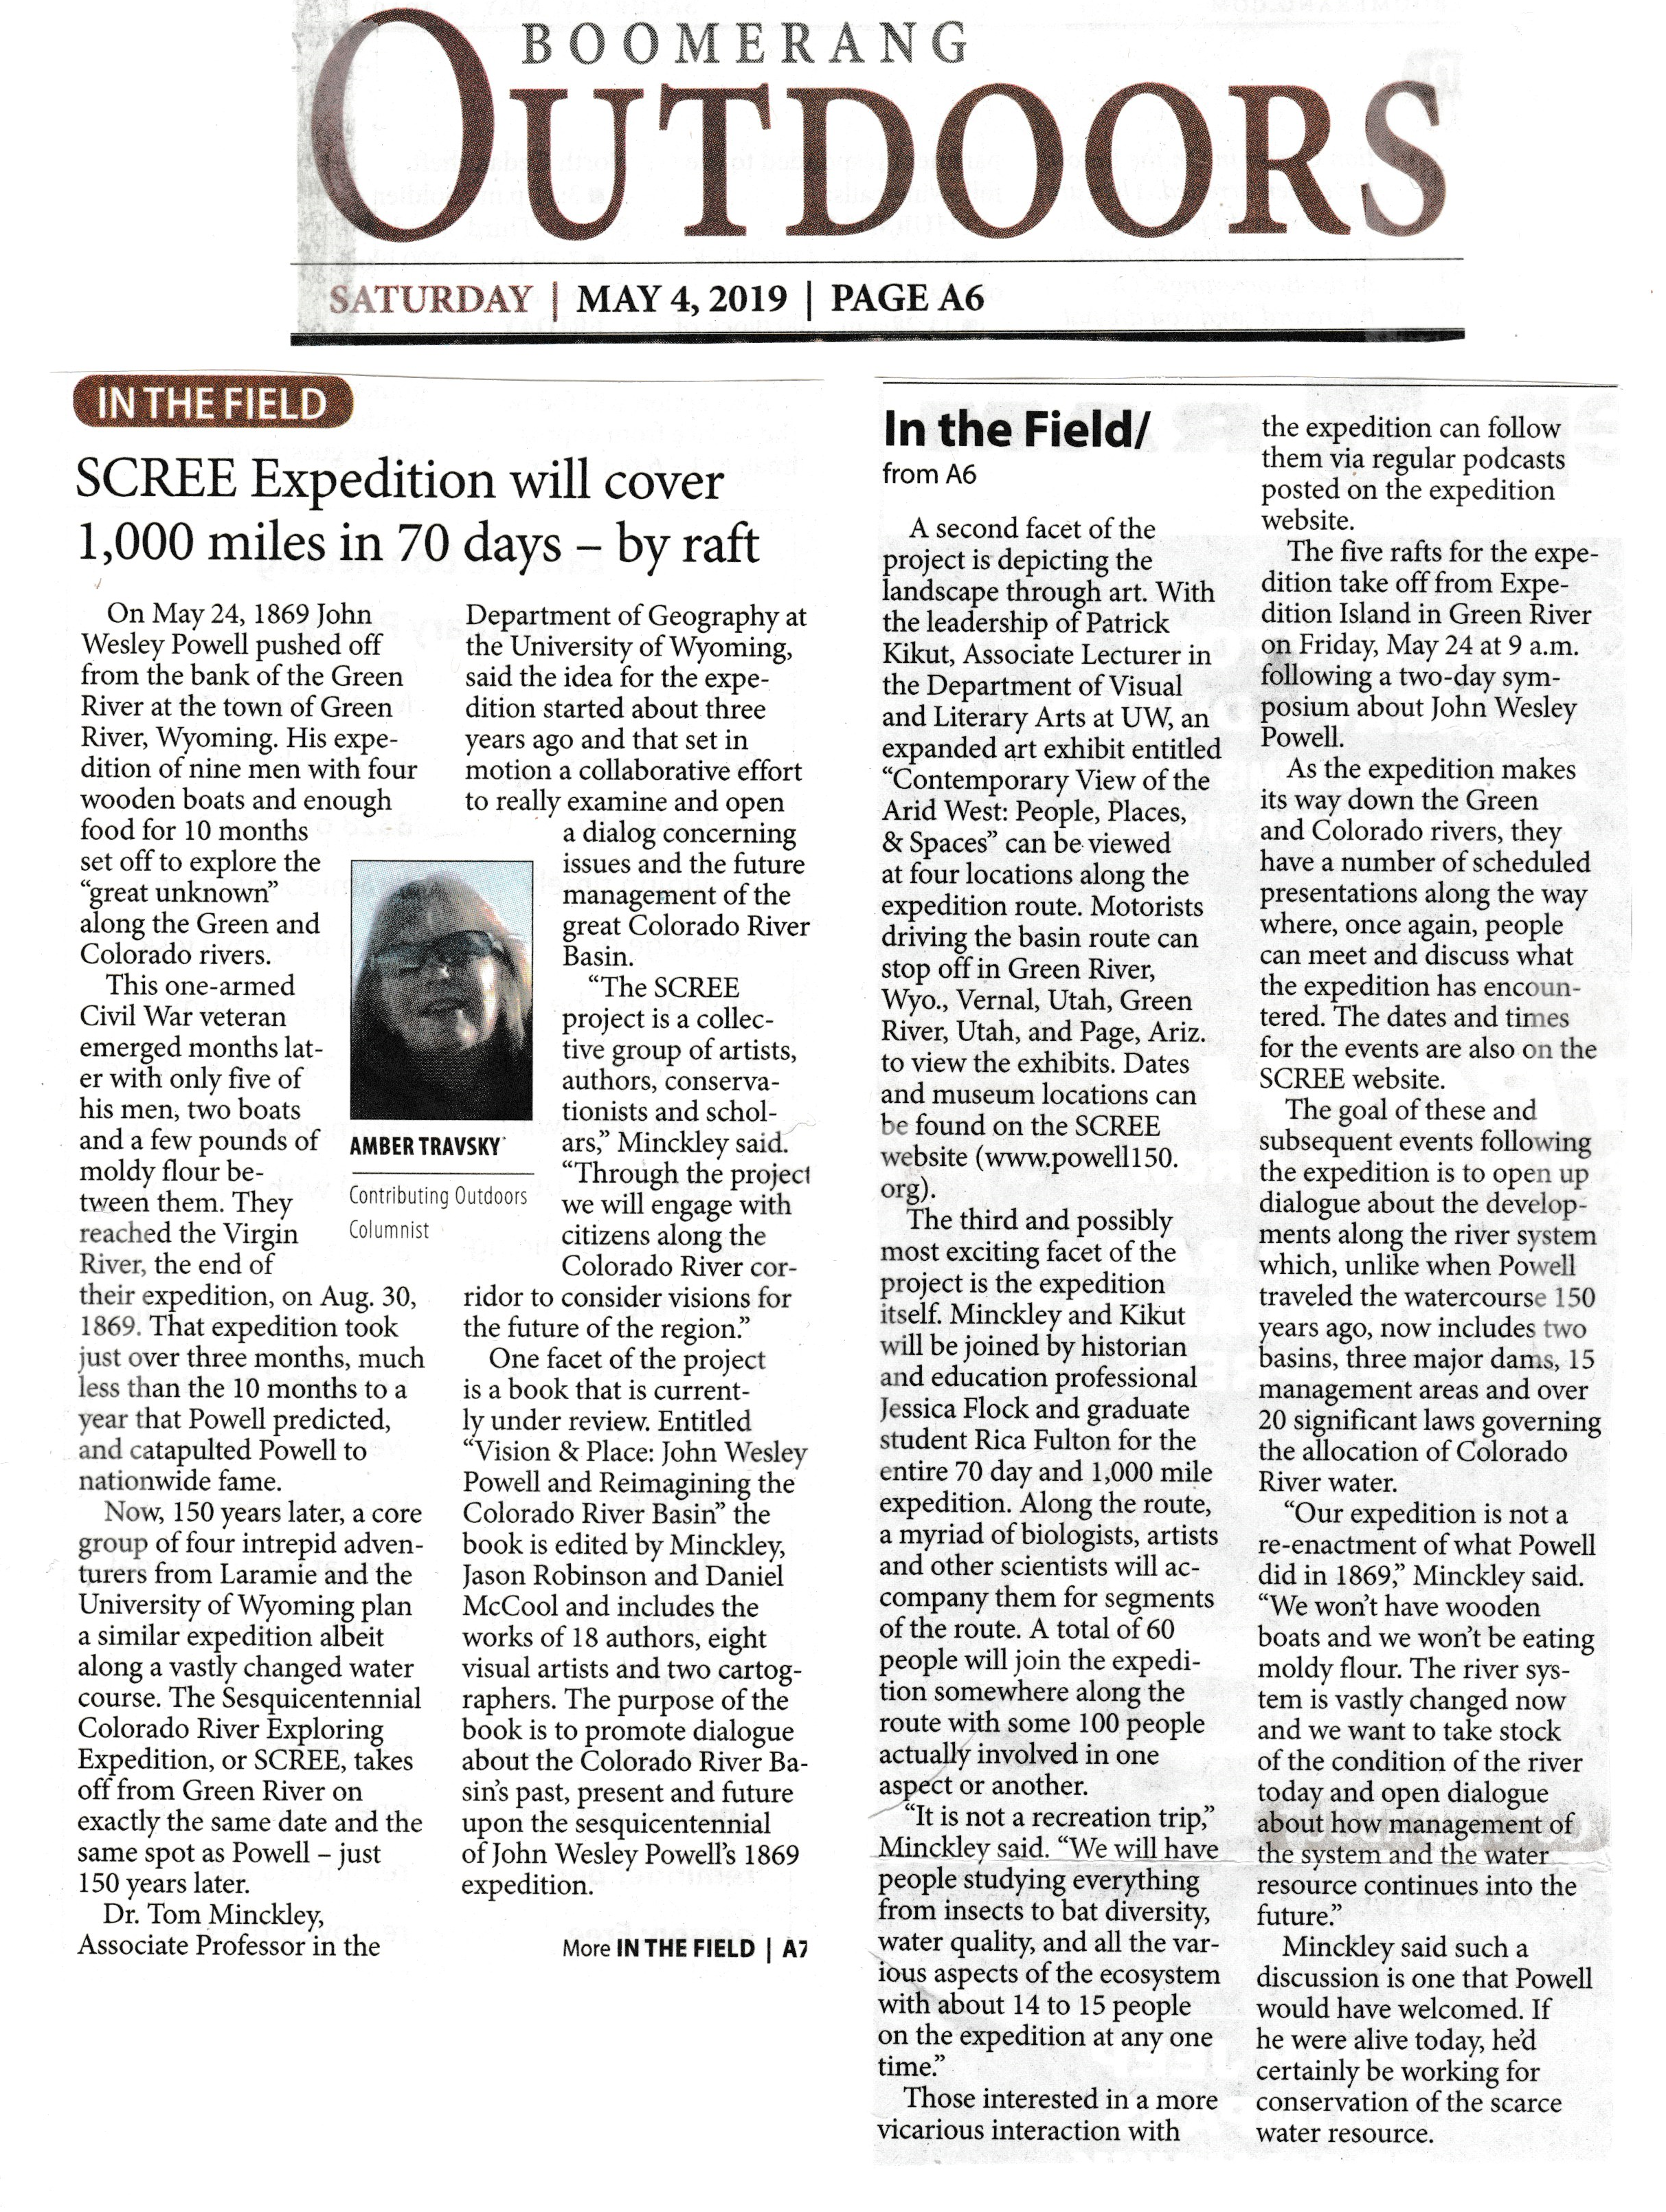 """""""SCREE Expedition will cover 1,000 miles in 70 days--by raft """" authored by Amber Travsky for the Laramie Boomerang, May 4, 2019."""